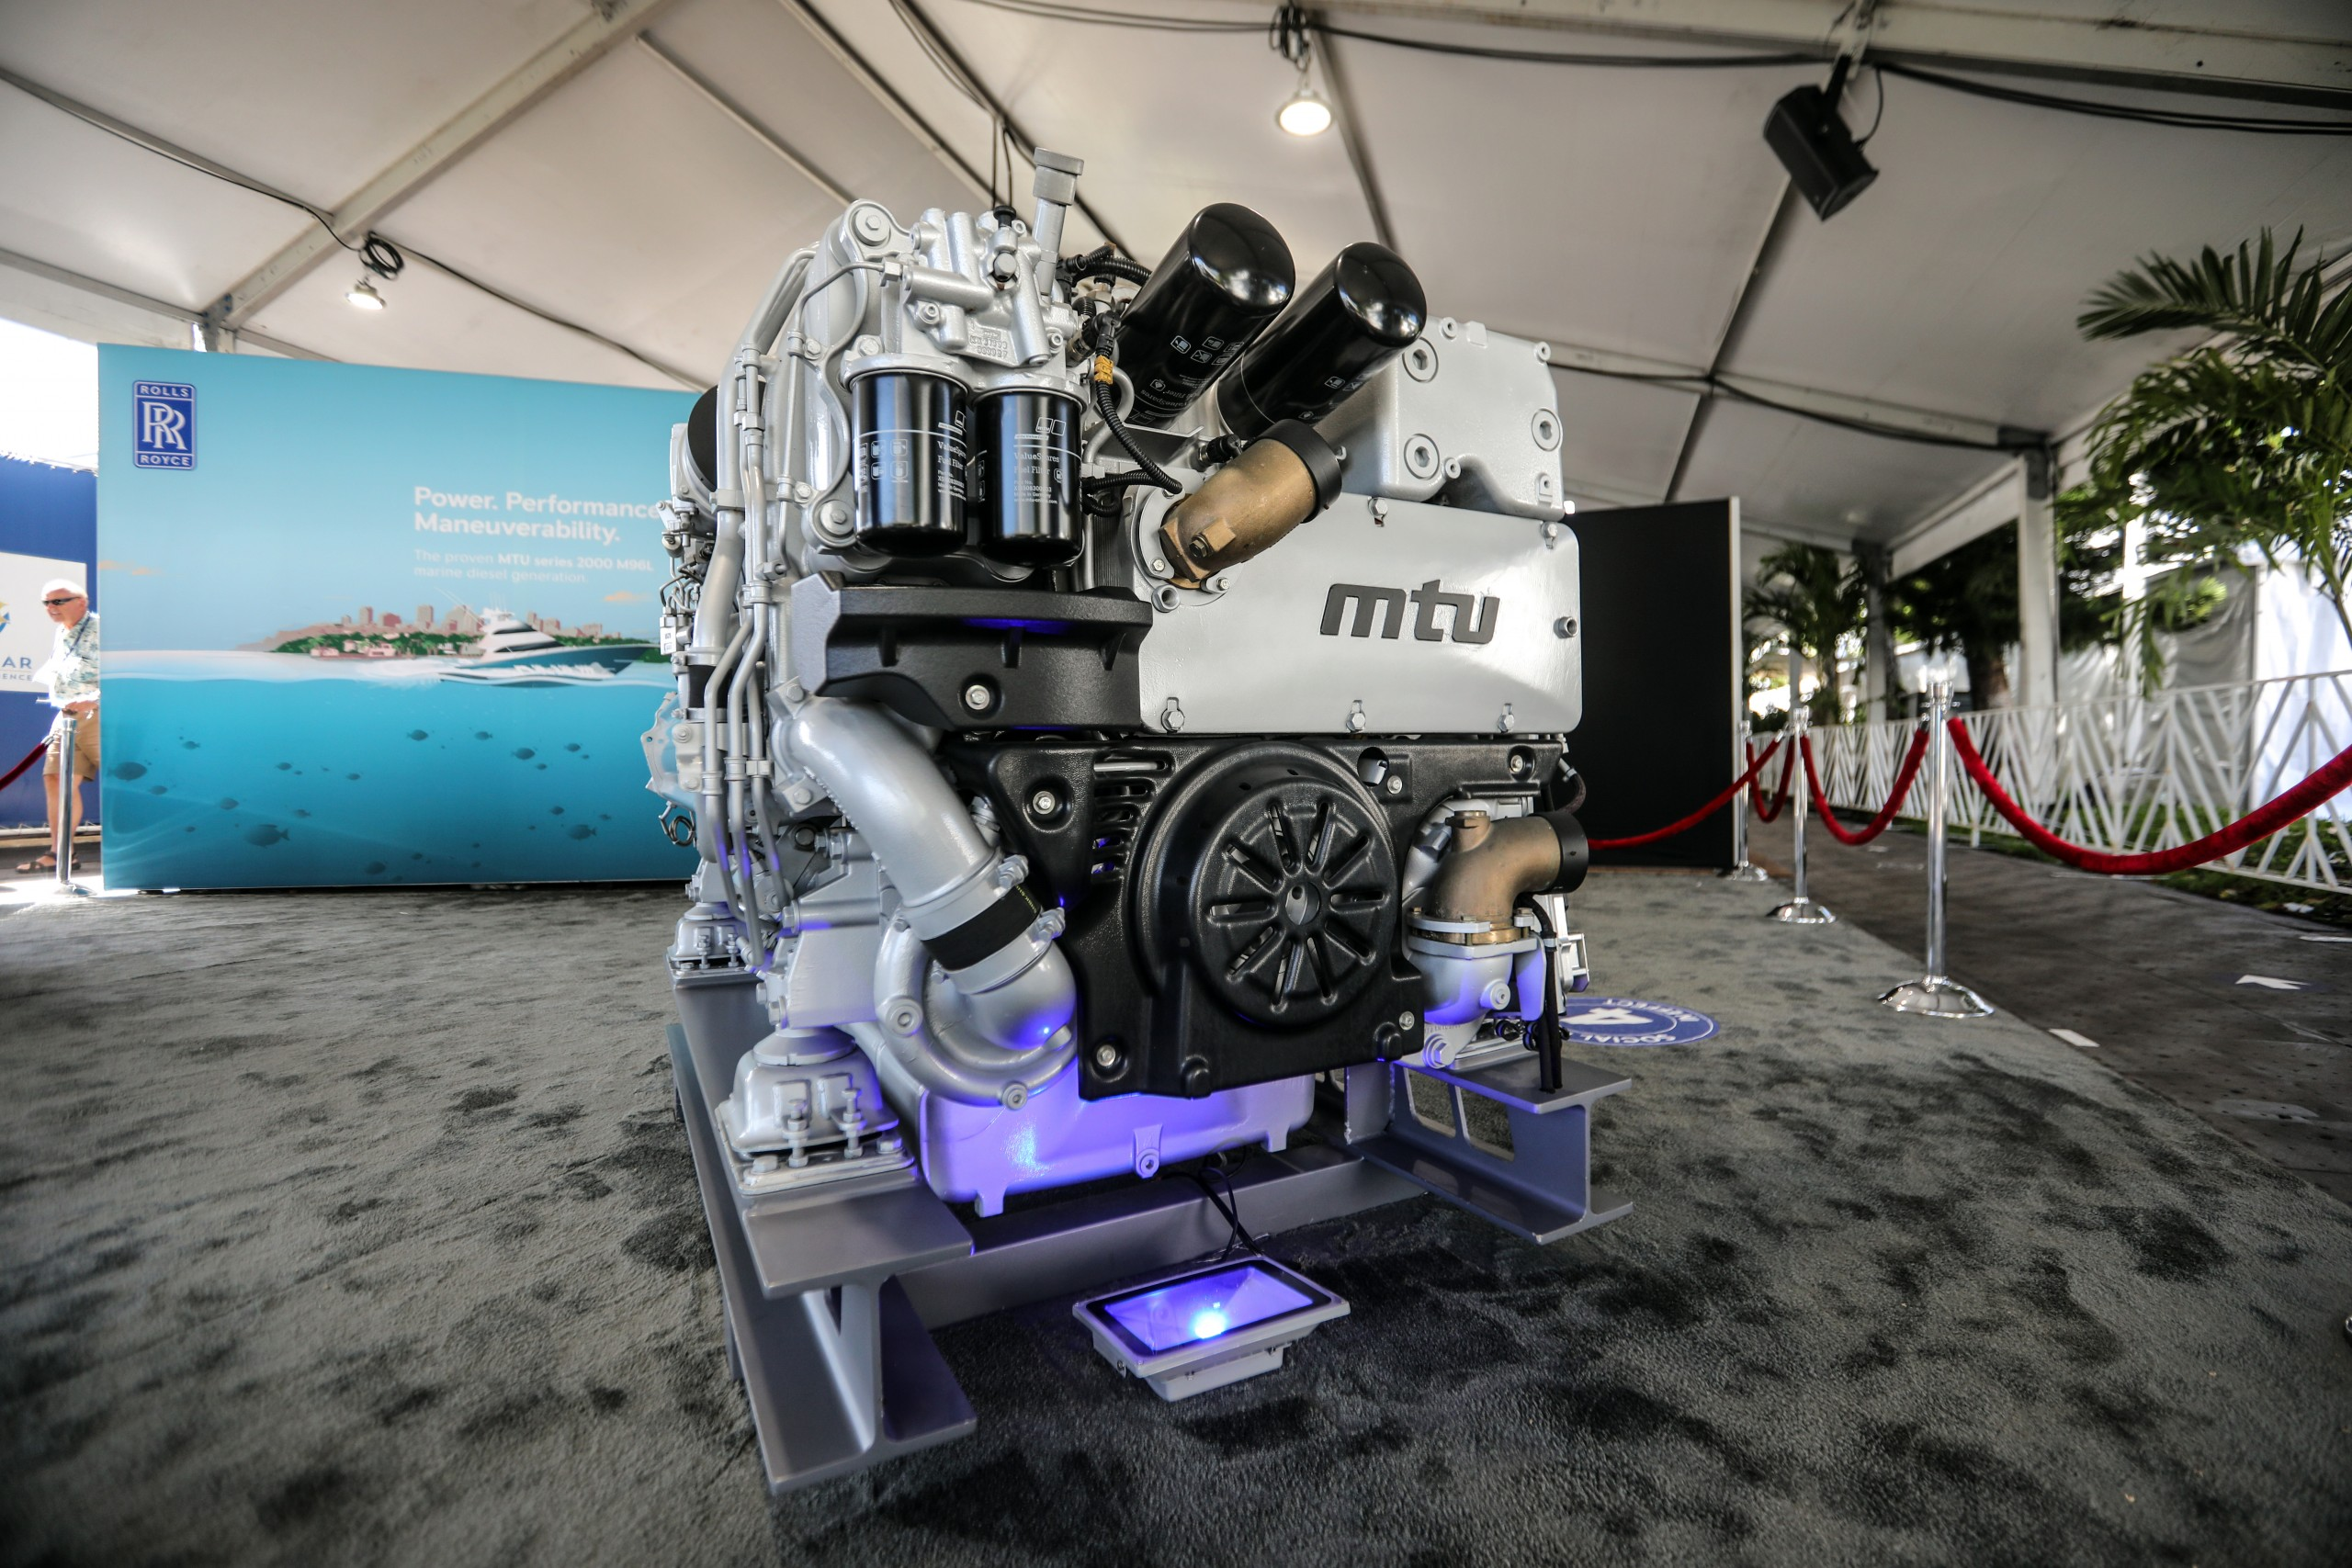 MTU Marine Diesel Motor on display